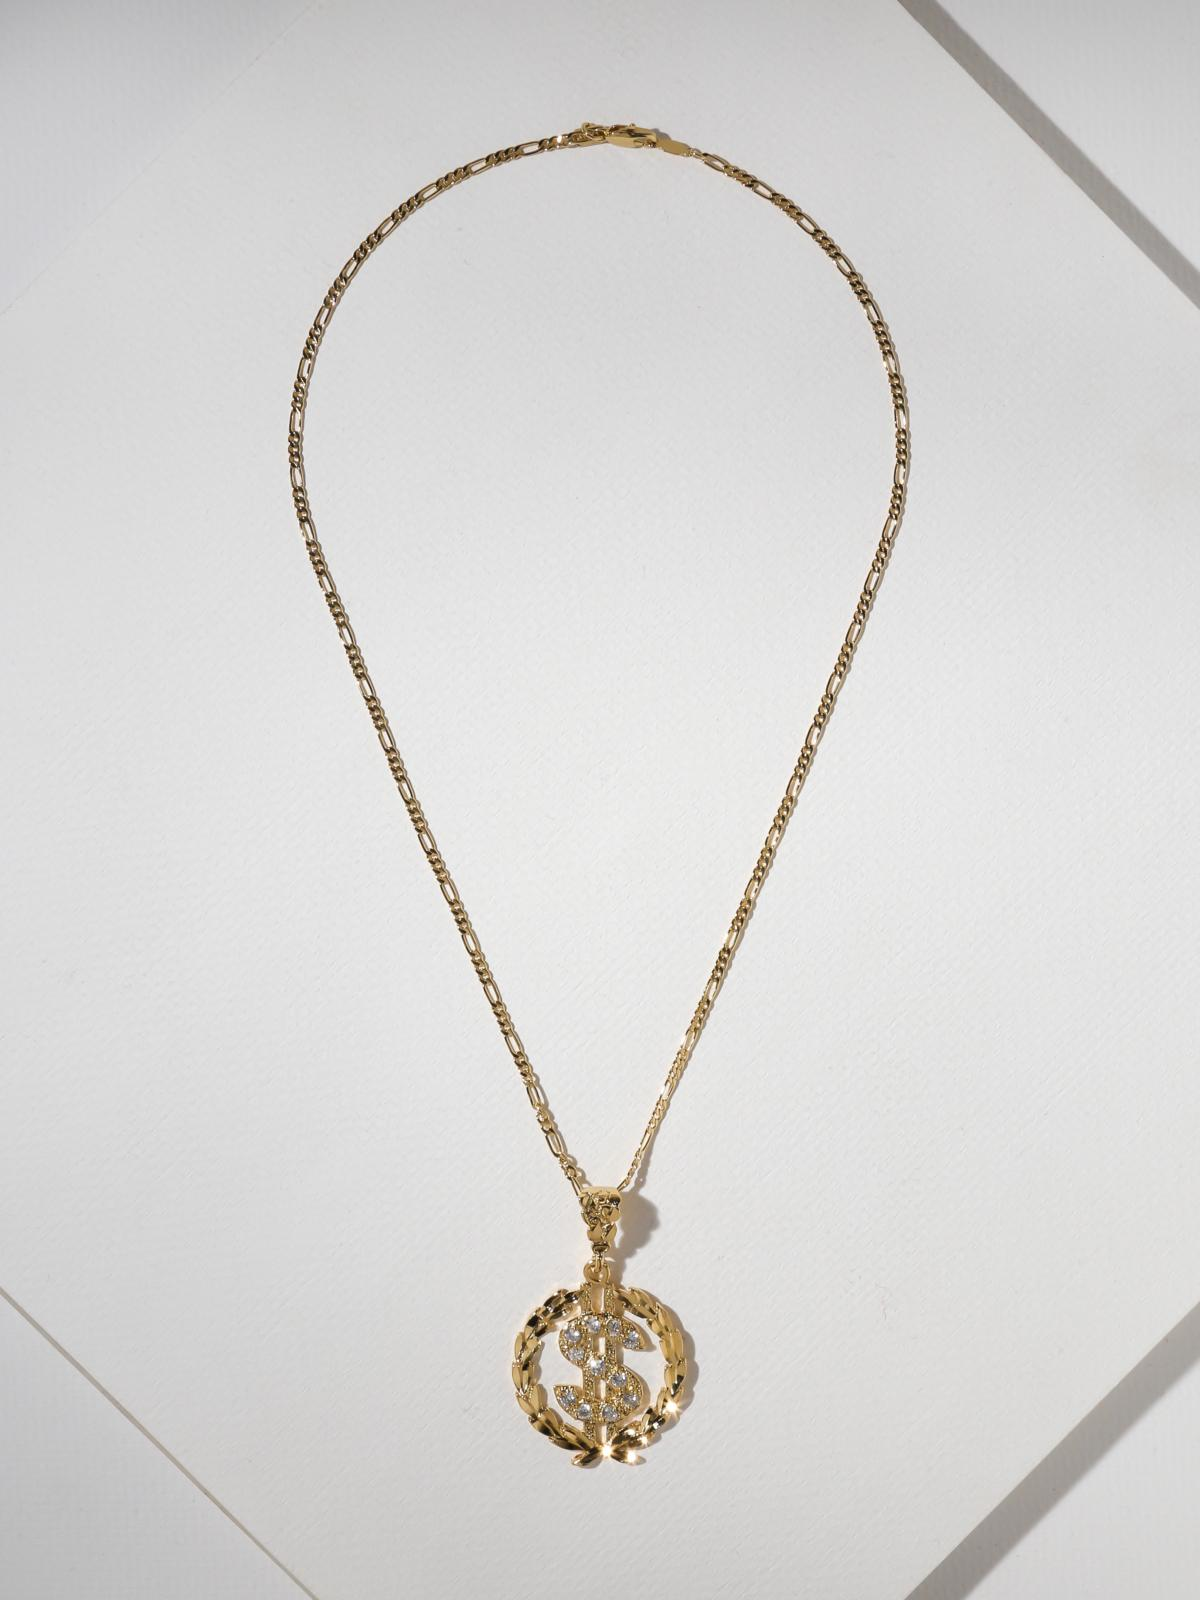 The Gambler Necklace